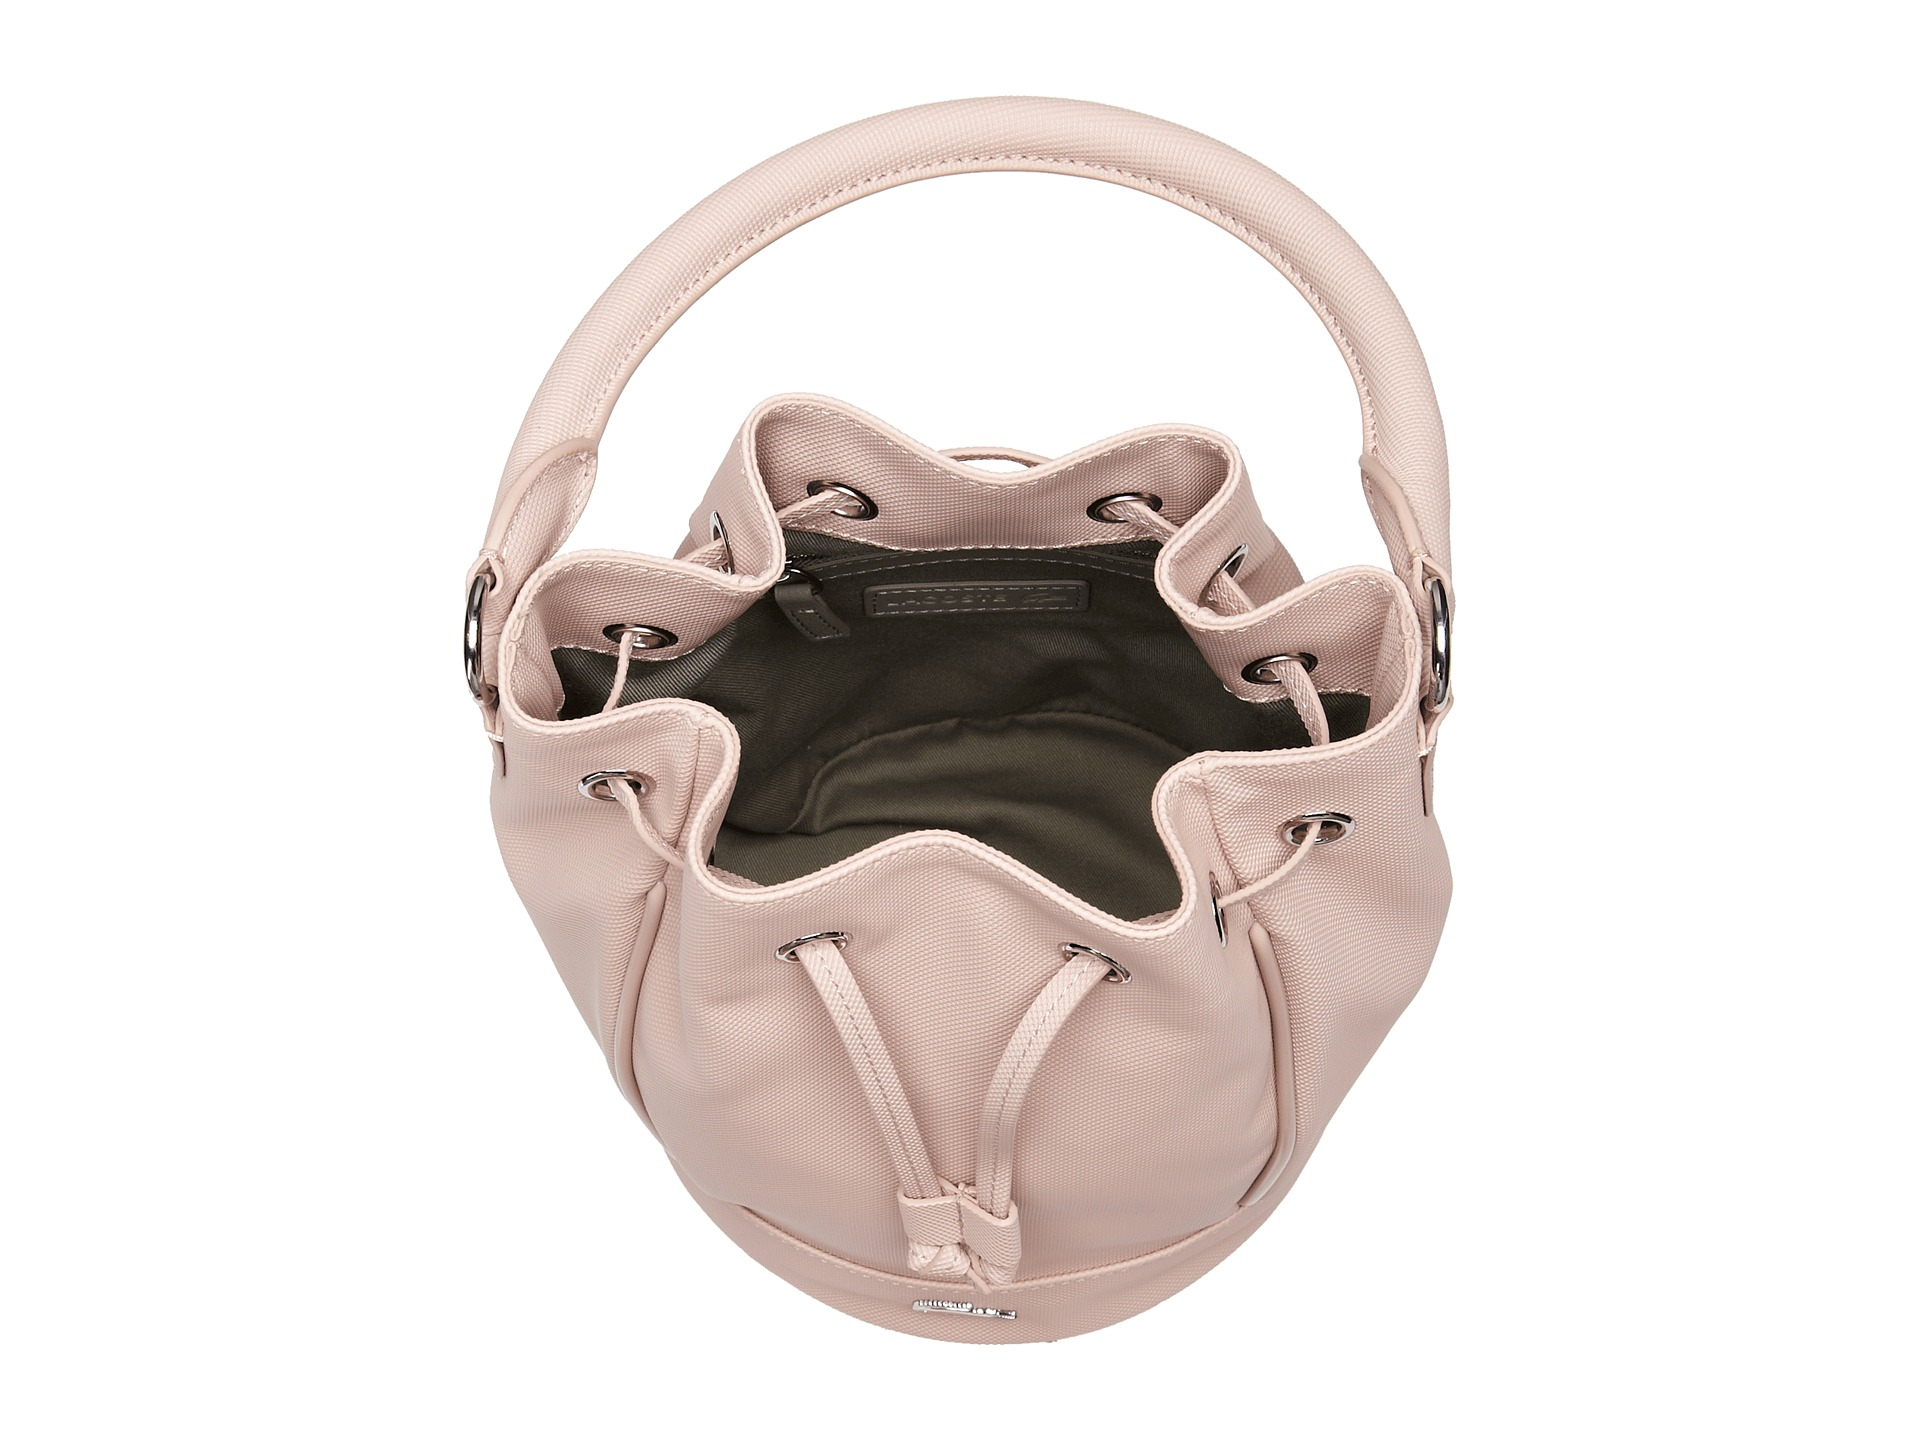 a35e51170d60c1 Lyst - Lacoste Daily Classic Bucket Bag in Pink